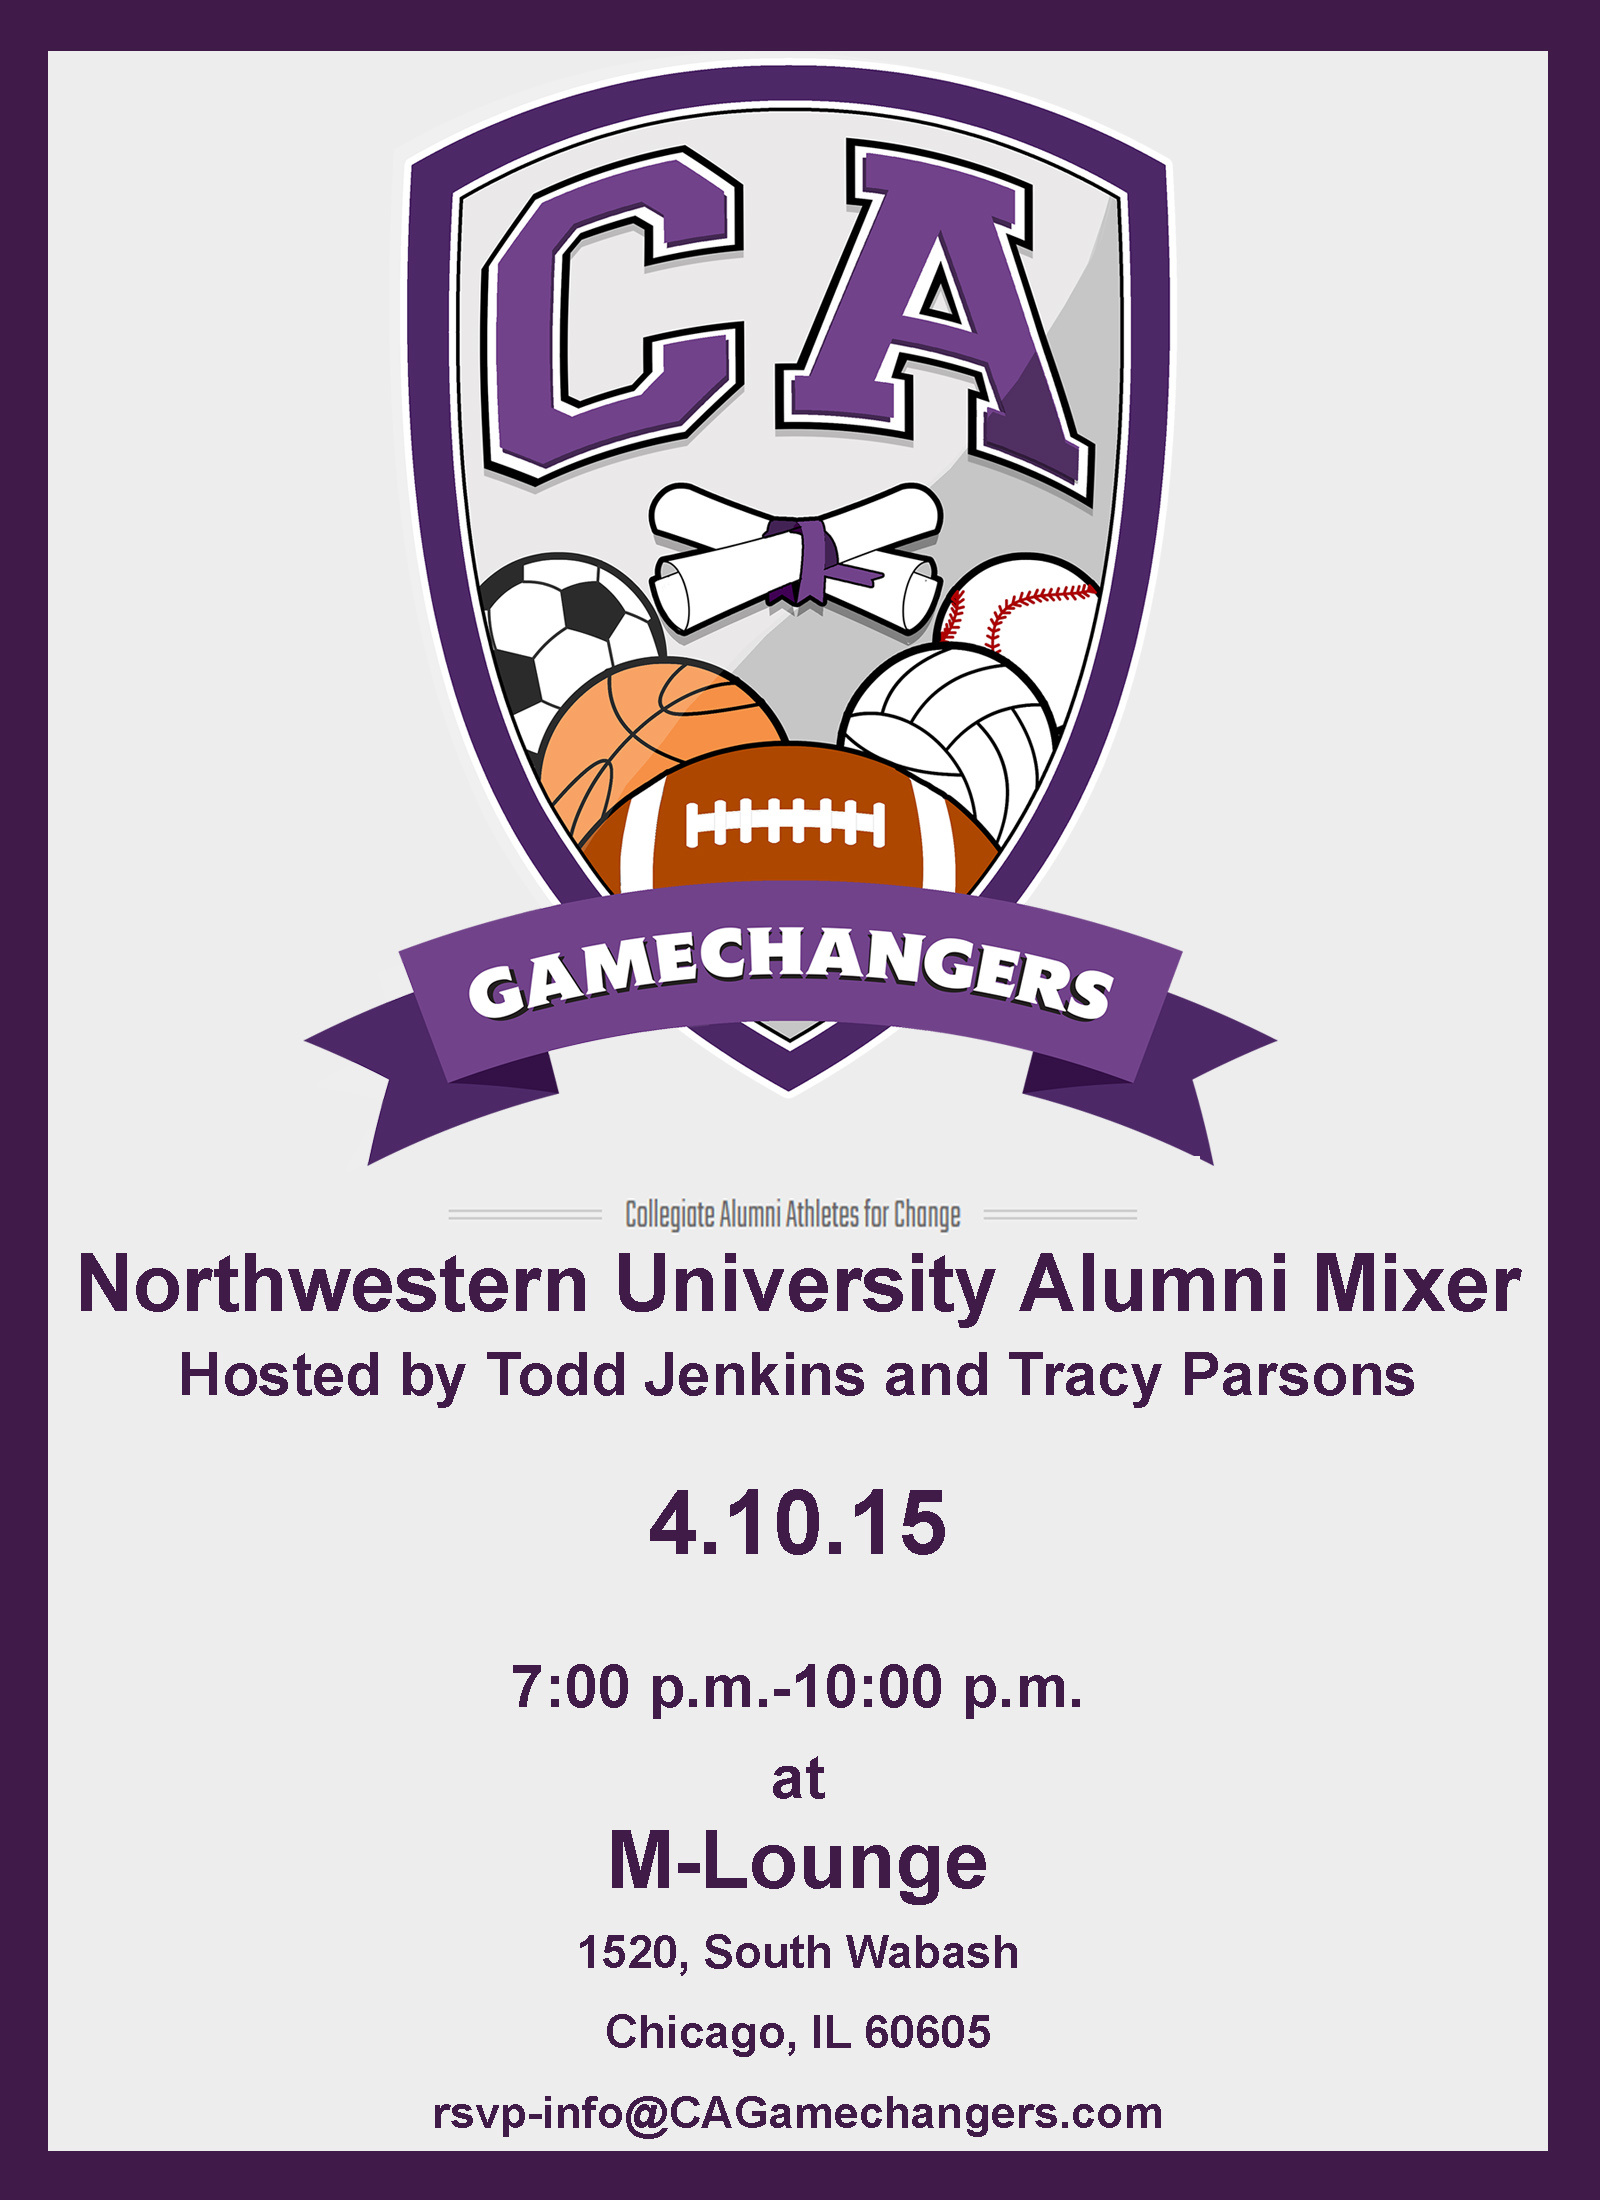 APRIL 10 2015  Spring Game Alumni Mixer HOSTED by The GAMECHANGERS: APRIL 10 2015  Spring Game Alumni Mixer HOSTED by The GAMECHANGERS